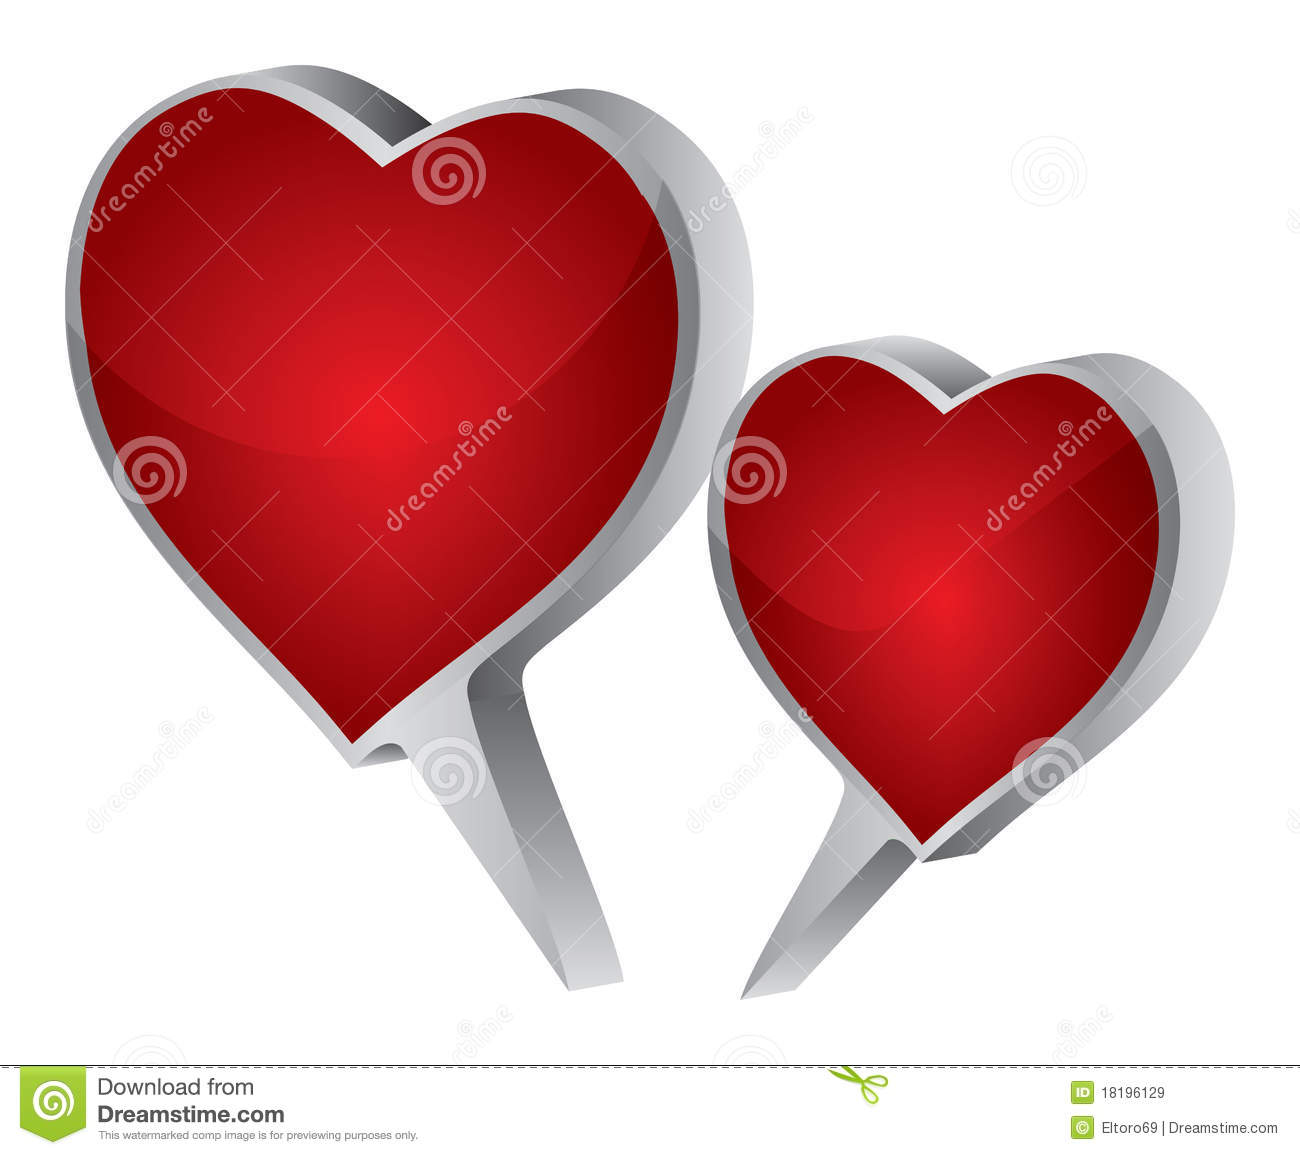 Love Images In: Love Dialogue Stock Illustration. Illustration Of Beauty